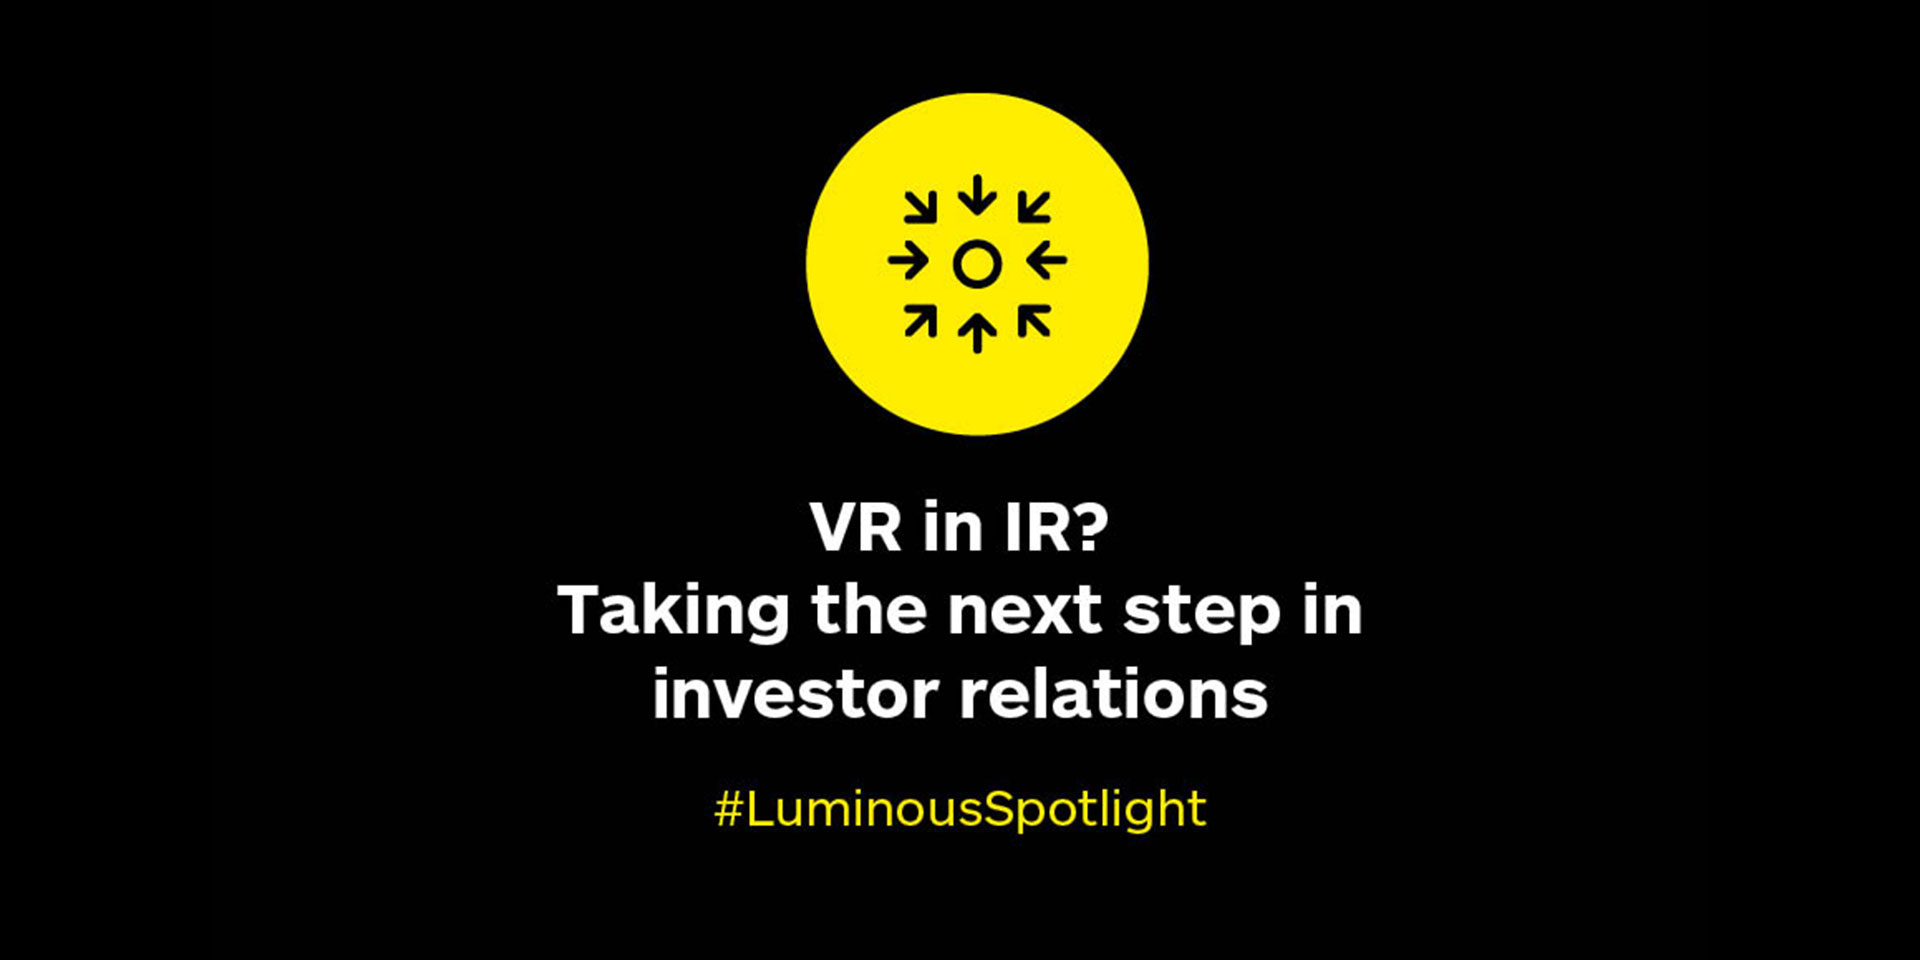 VR in IR? Taking the next step in investor relations